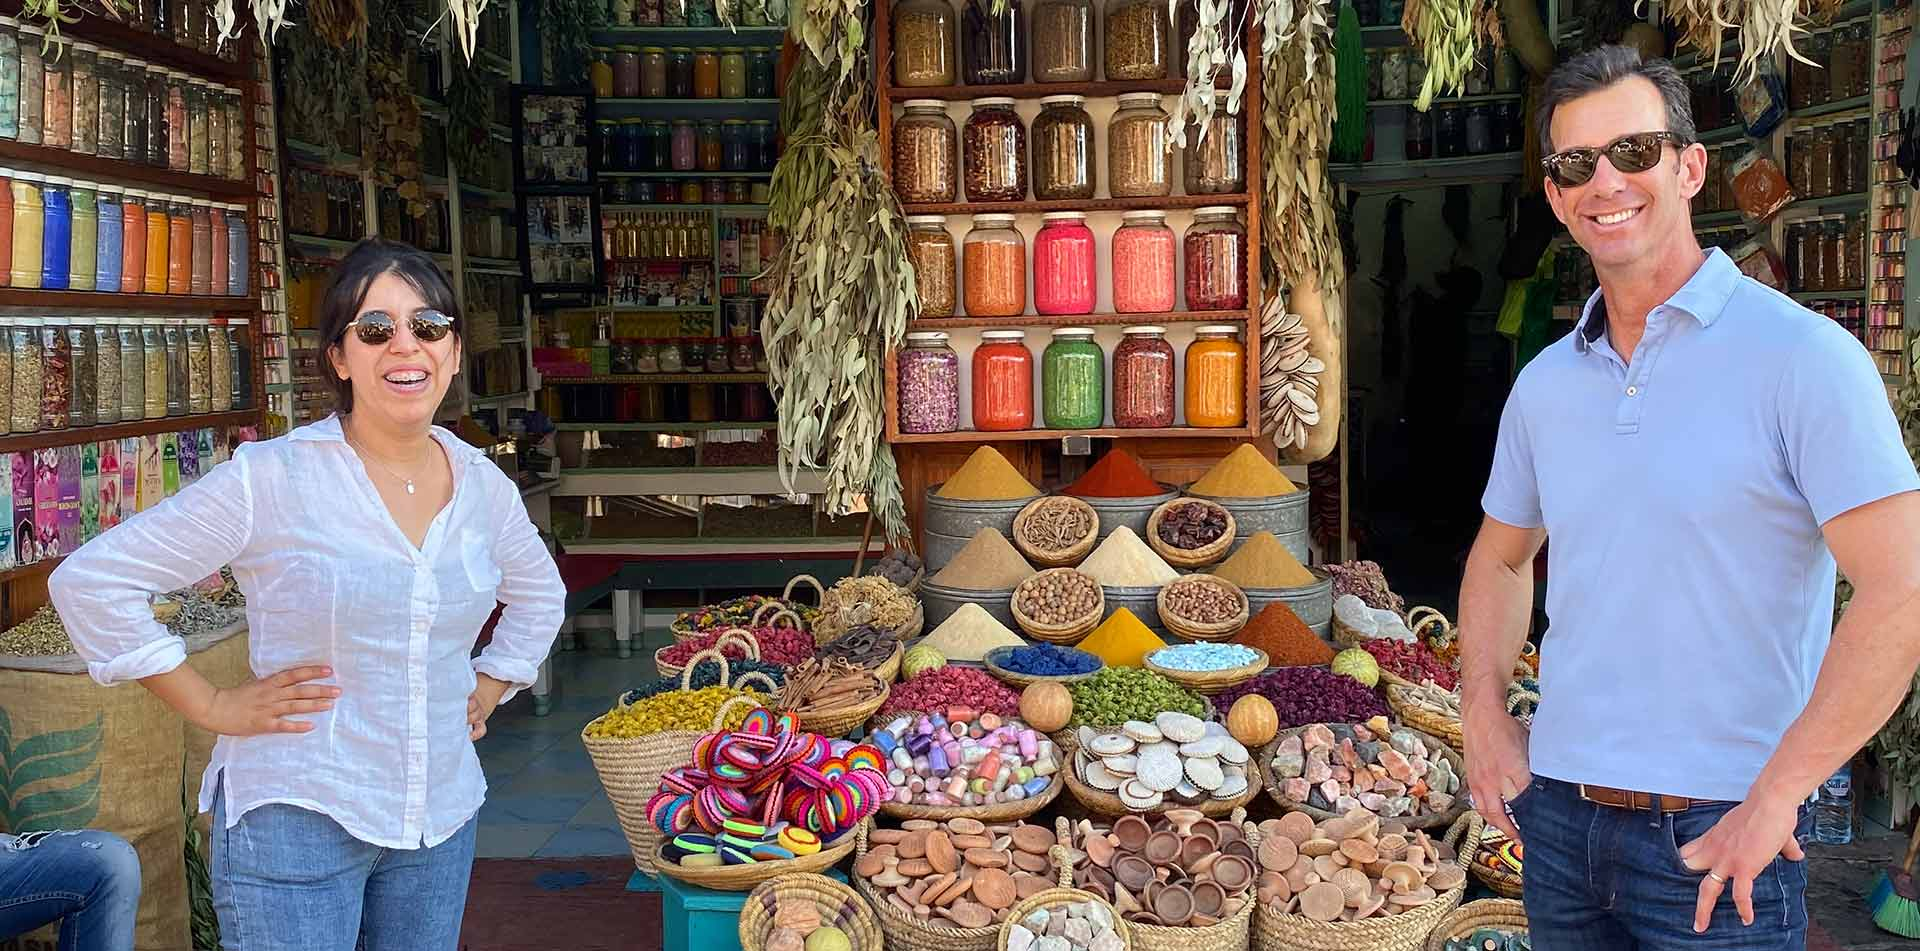 Africa Morocco happy man and woman smiling in front of colorful traditional spice market - luxury vacation destinations